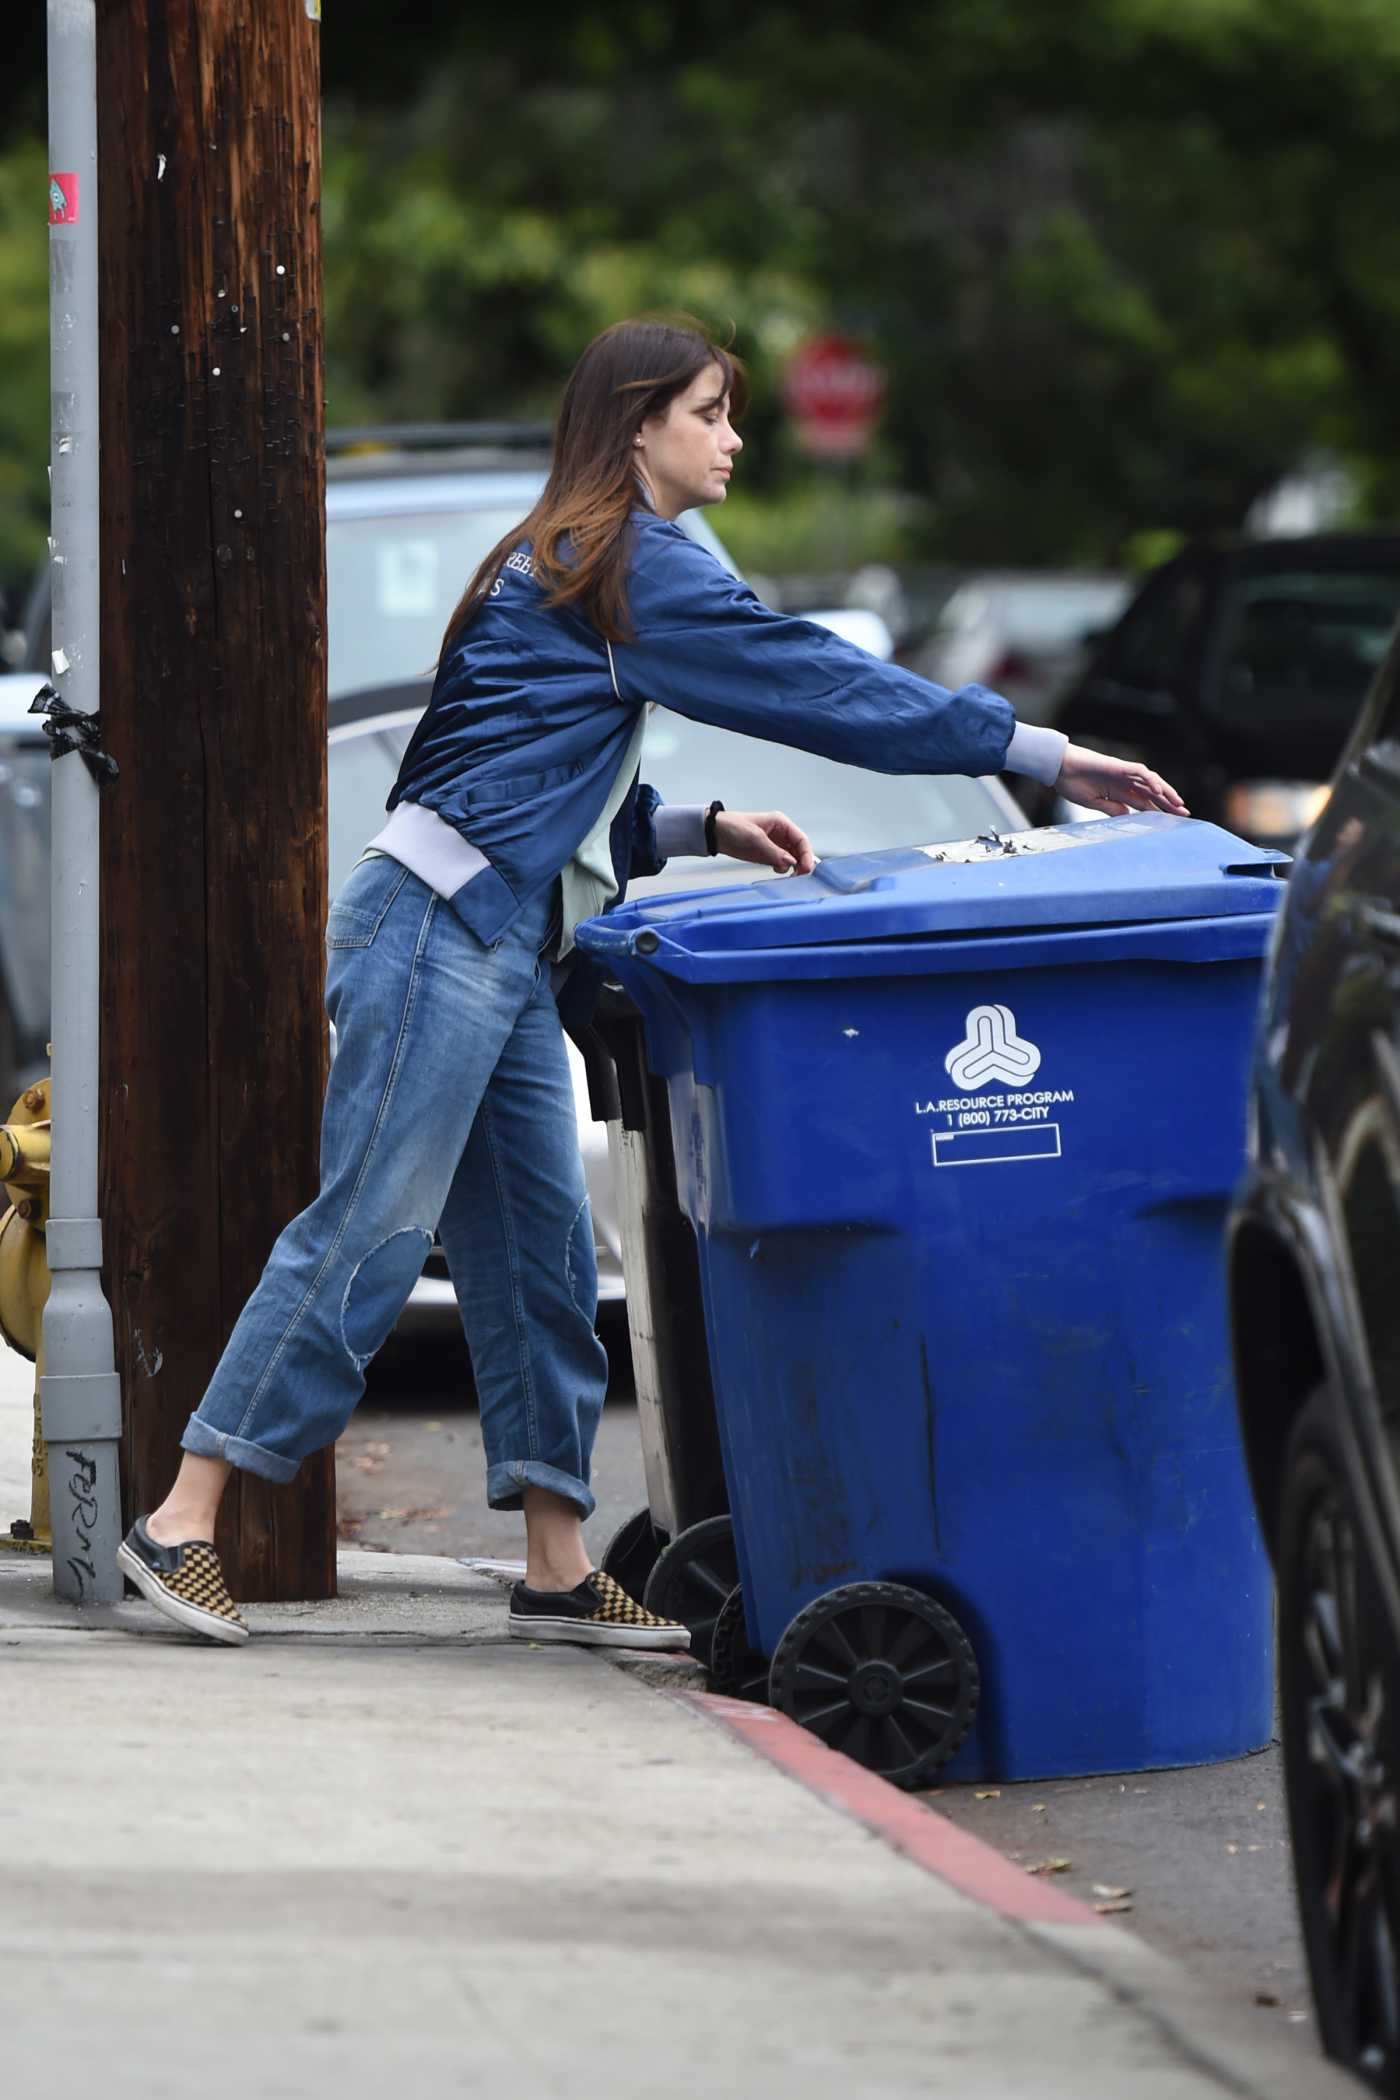 Michelle Monaghan Does a Trip to the Curb with Her Garbage Bins in LA 05/10/2019